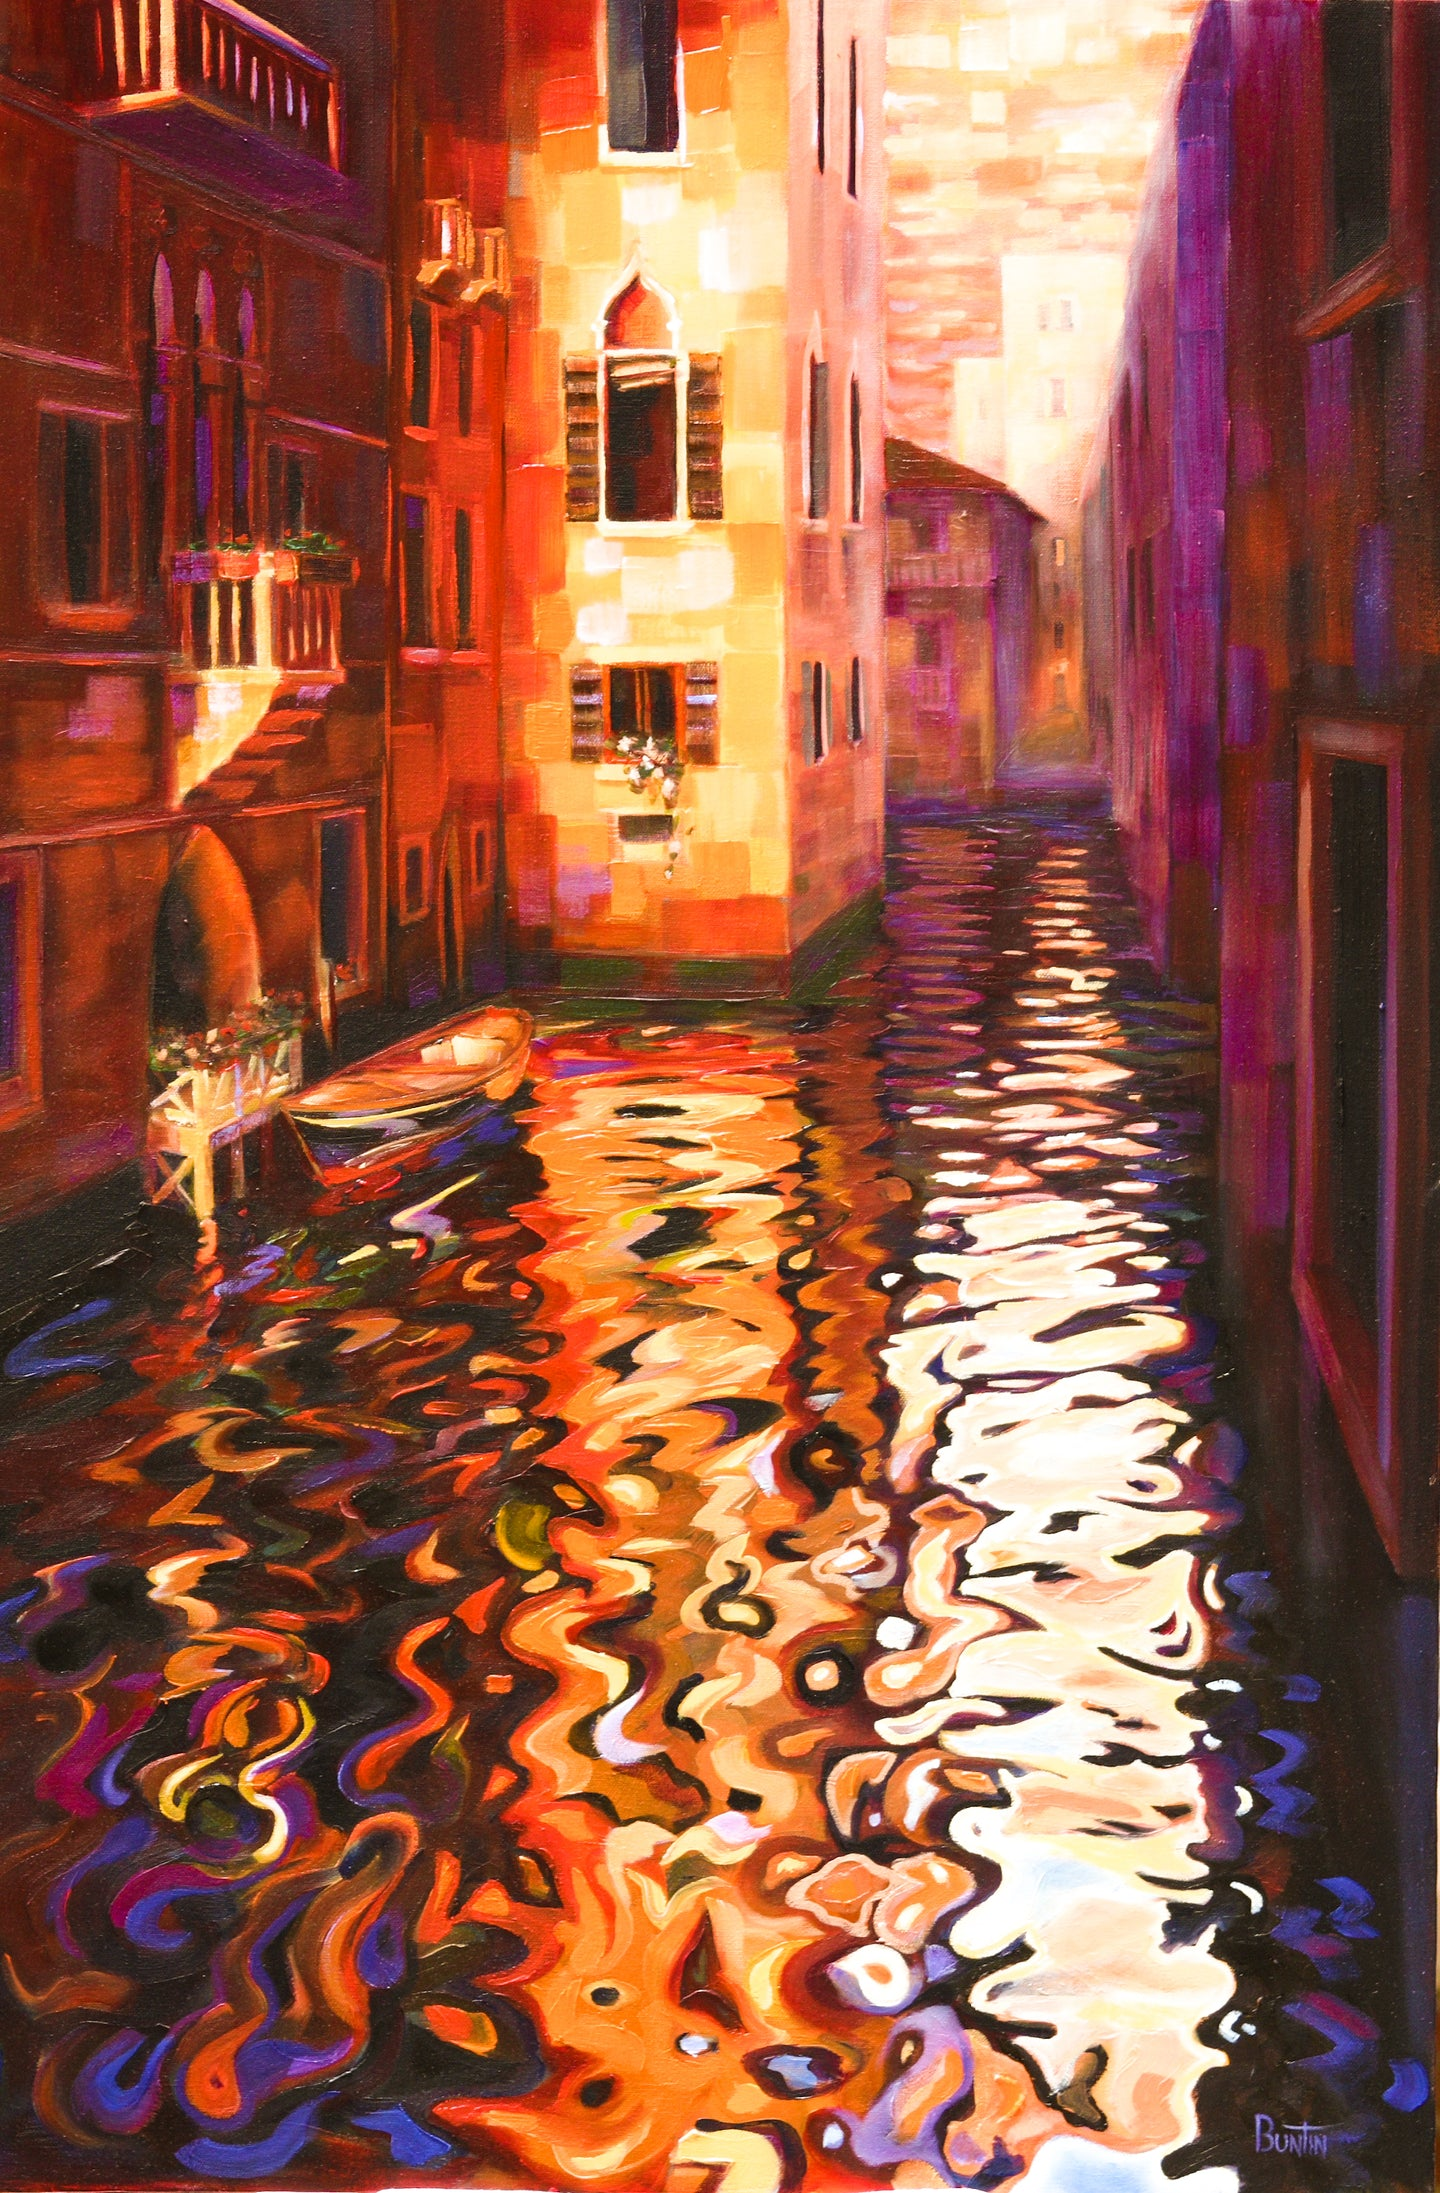 Reflections of Venice - Hand embellished giclee on canvas limited edition 24x36in